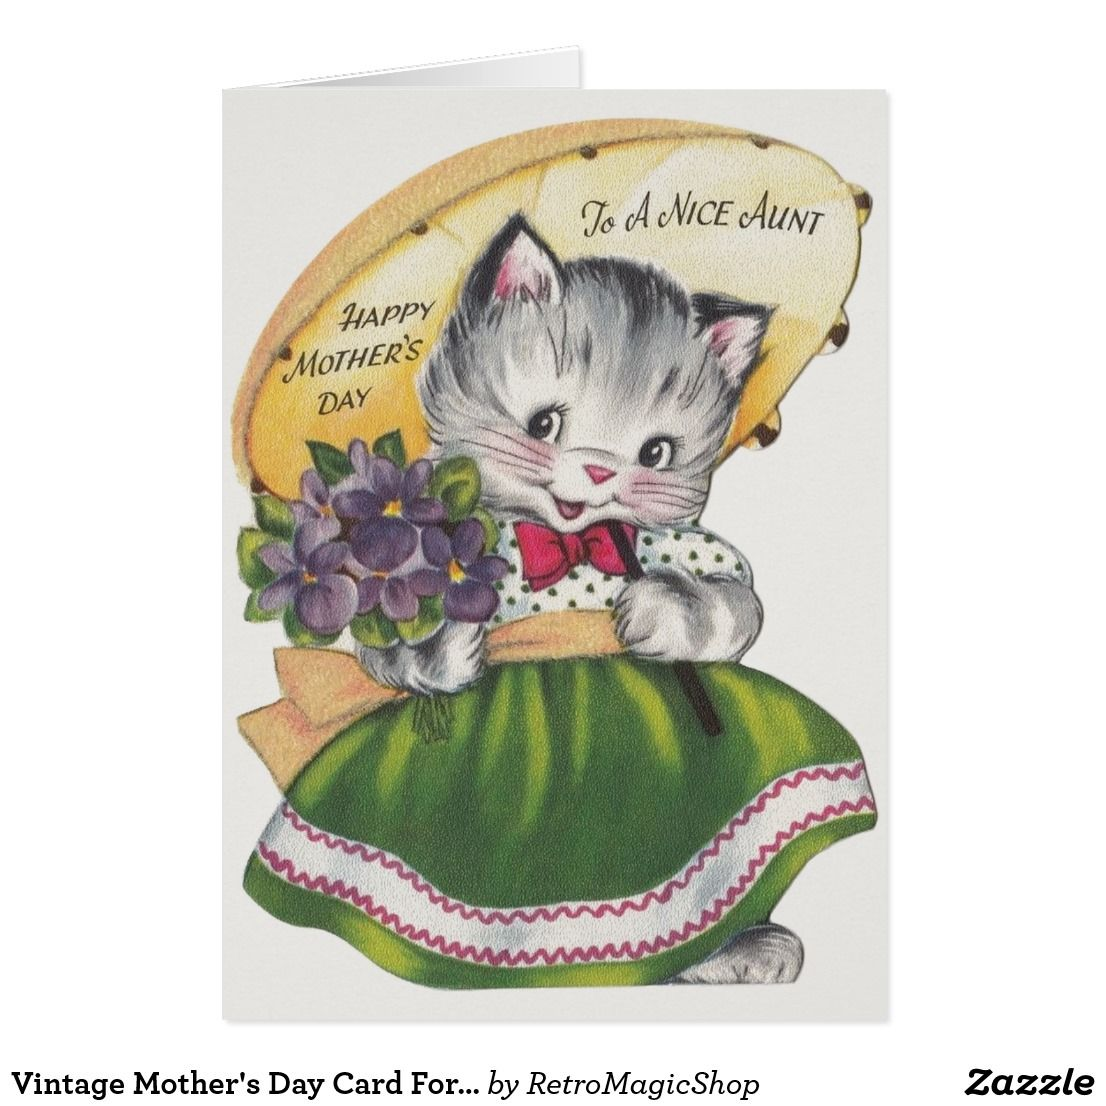 Vintage Mother's Day Card For a Nice Aunt